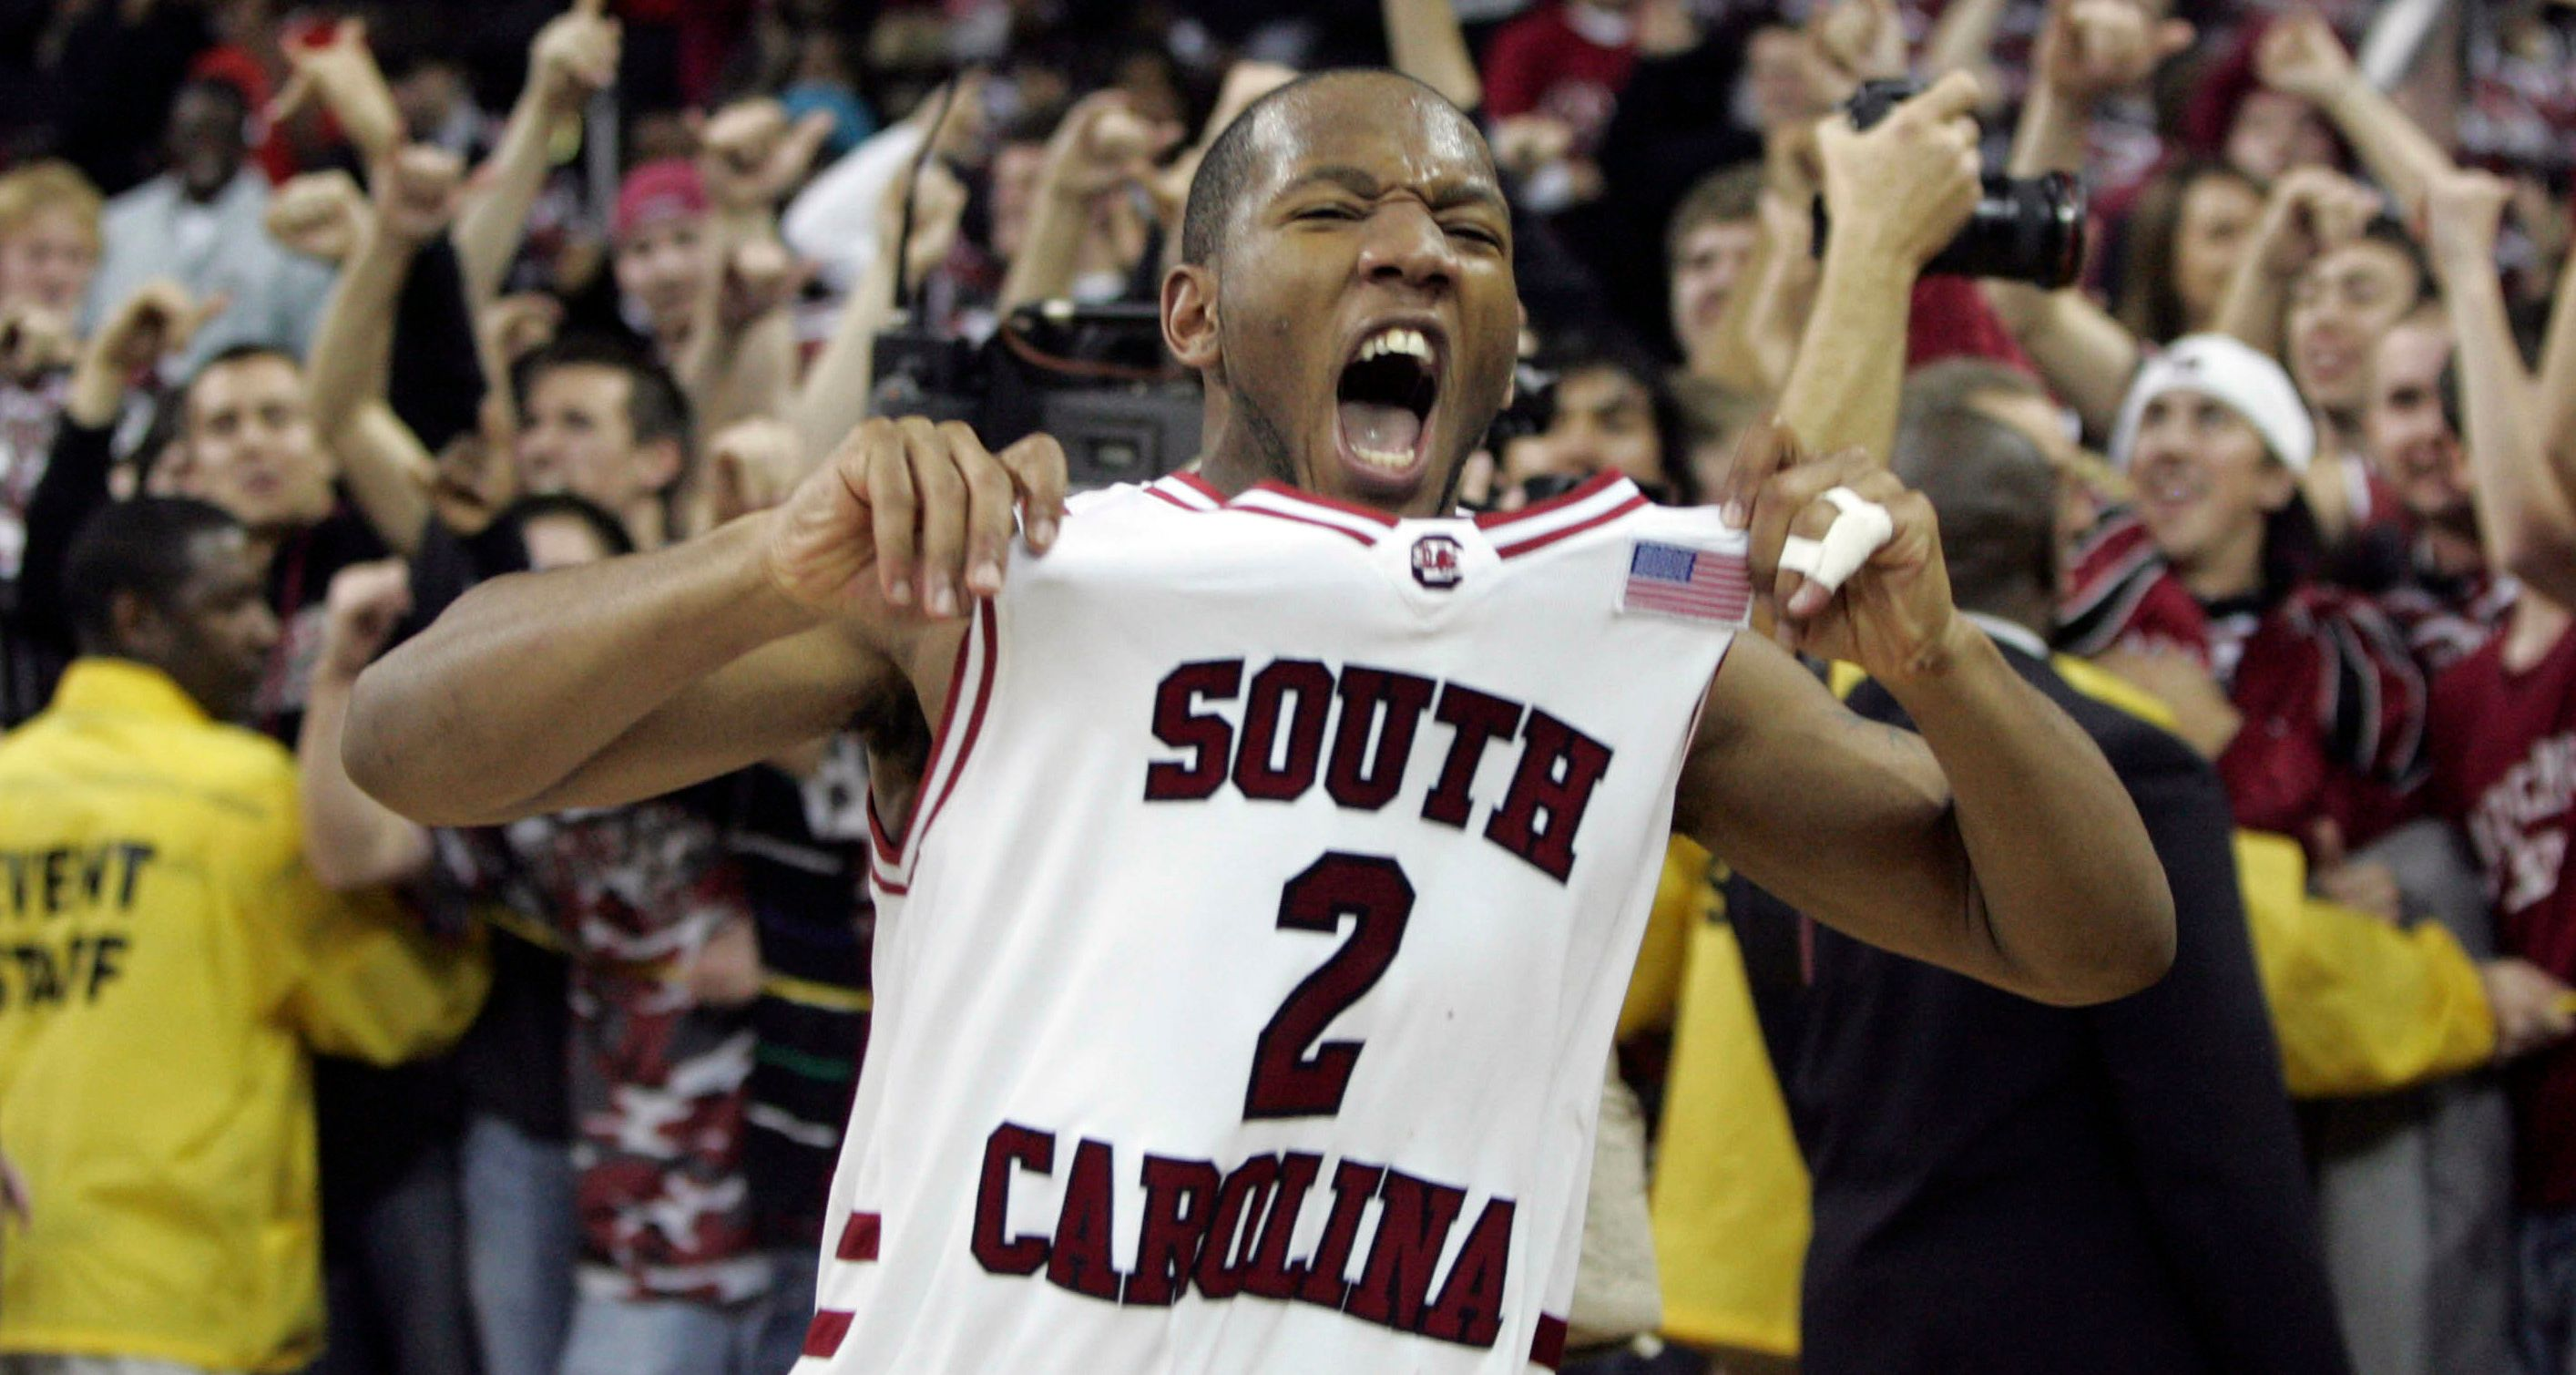 SEC Rewind: 2009 Florida vs. South Carolina Basketball